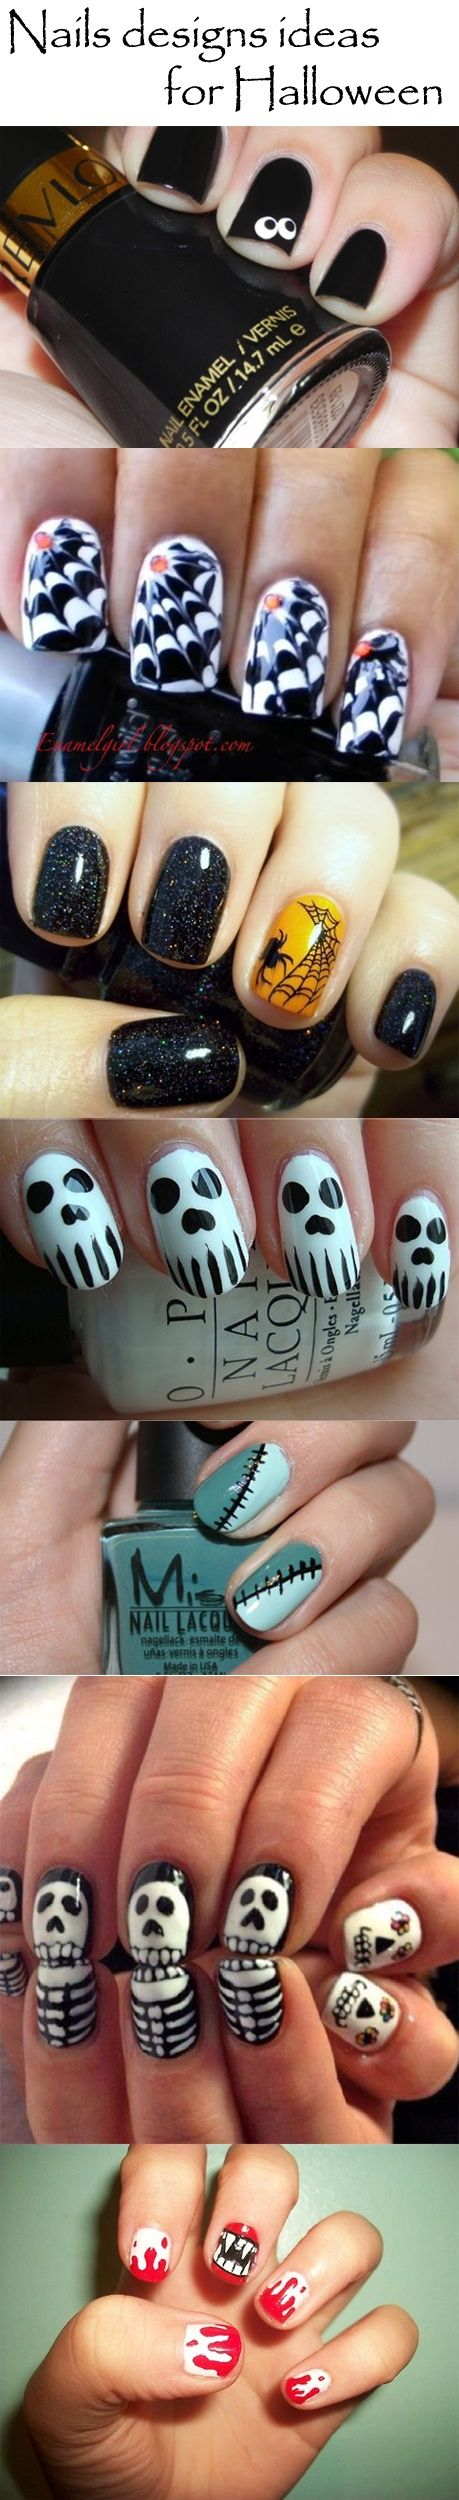 cool cute Halloween nails; nails designs ideas for Halloween #nails #nailpolish #naildesigns #nailart #popular #beauty